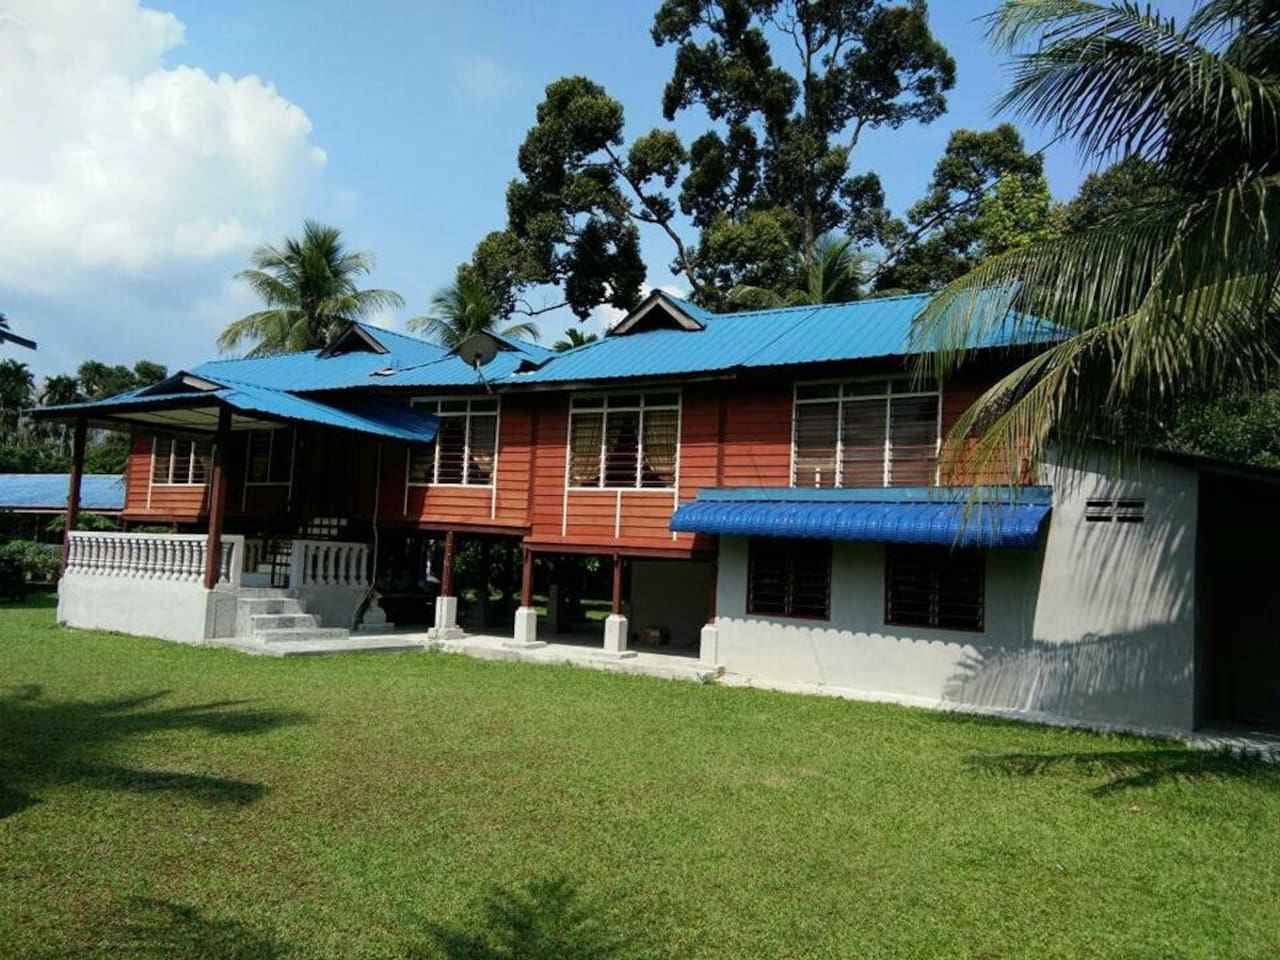 A very traditional house for you to immerse in the 'kampung' life